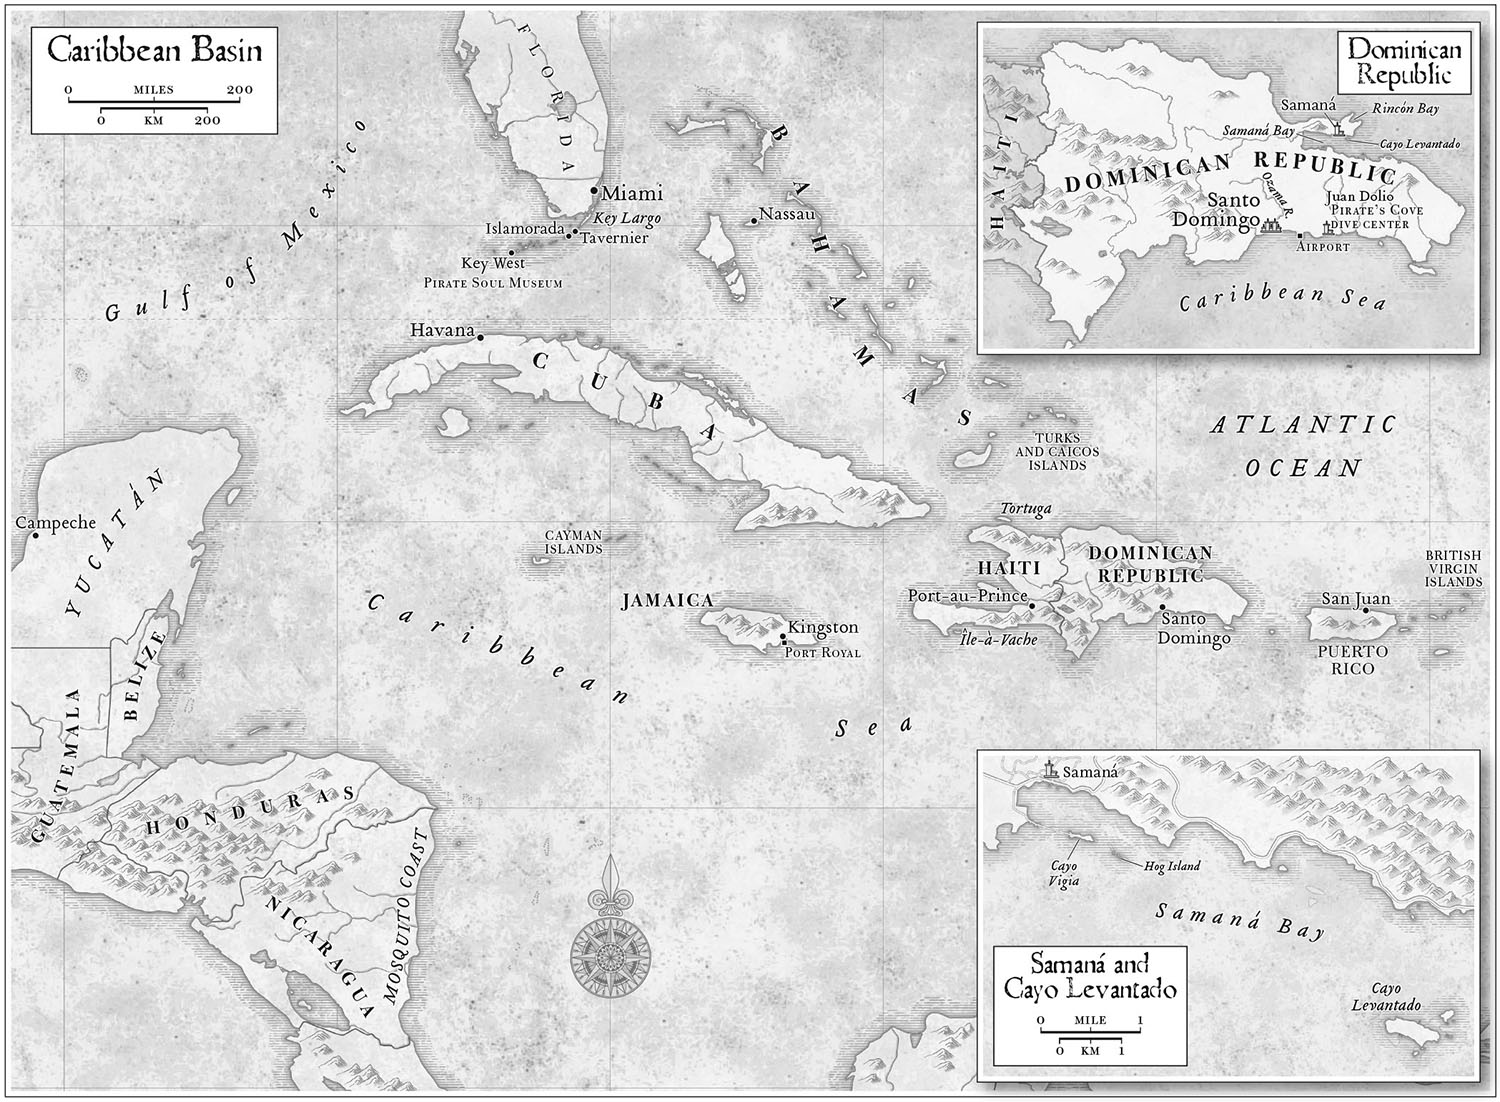 For   Pirate Hunters: Treasure, Obsession, and the Search for a Legendary Pirate Ship,  by Robert Kurson  (Random House, 2015).  Map copyright © David Lindroth Inc.    .